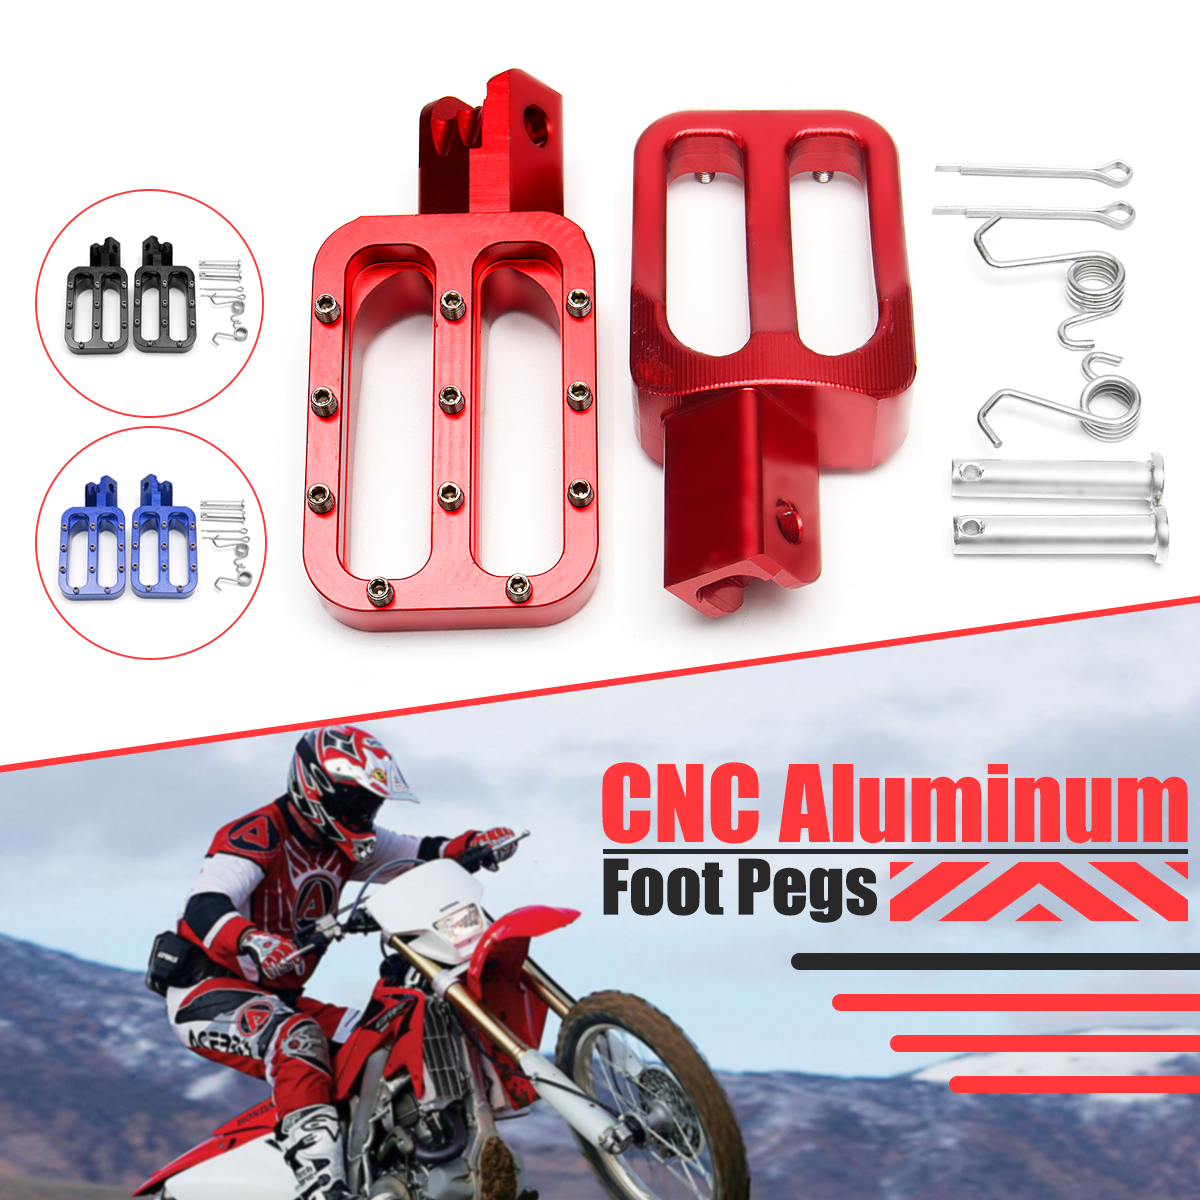 Pair Cnc Aluminum Foot Pegs For Crf Xr Klx Ttr Pw Ssr Pit Dirt Bike 2006 Honda 50cc Image Is Loading